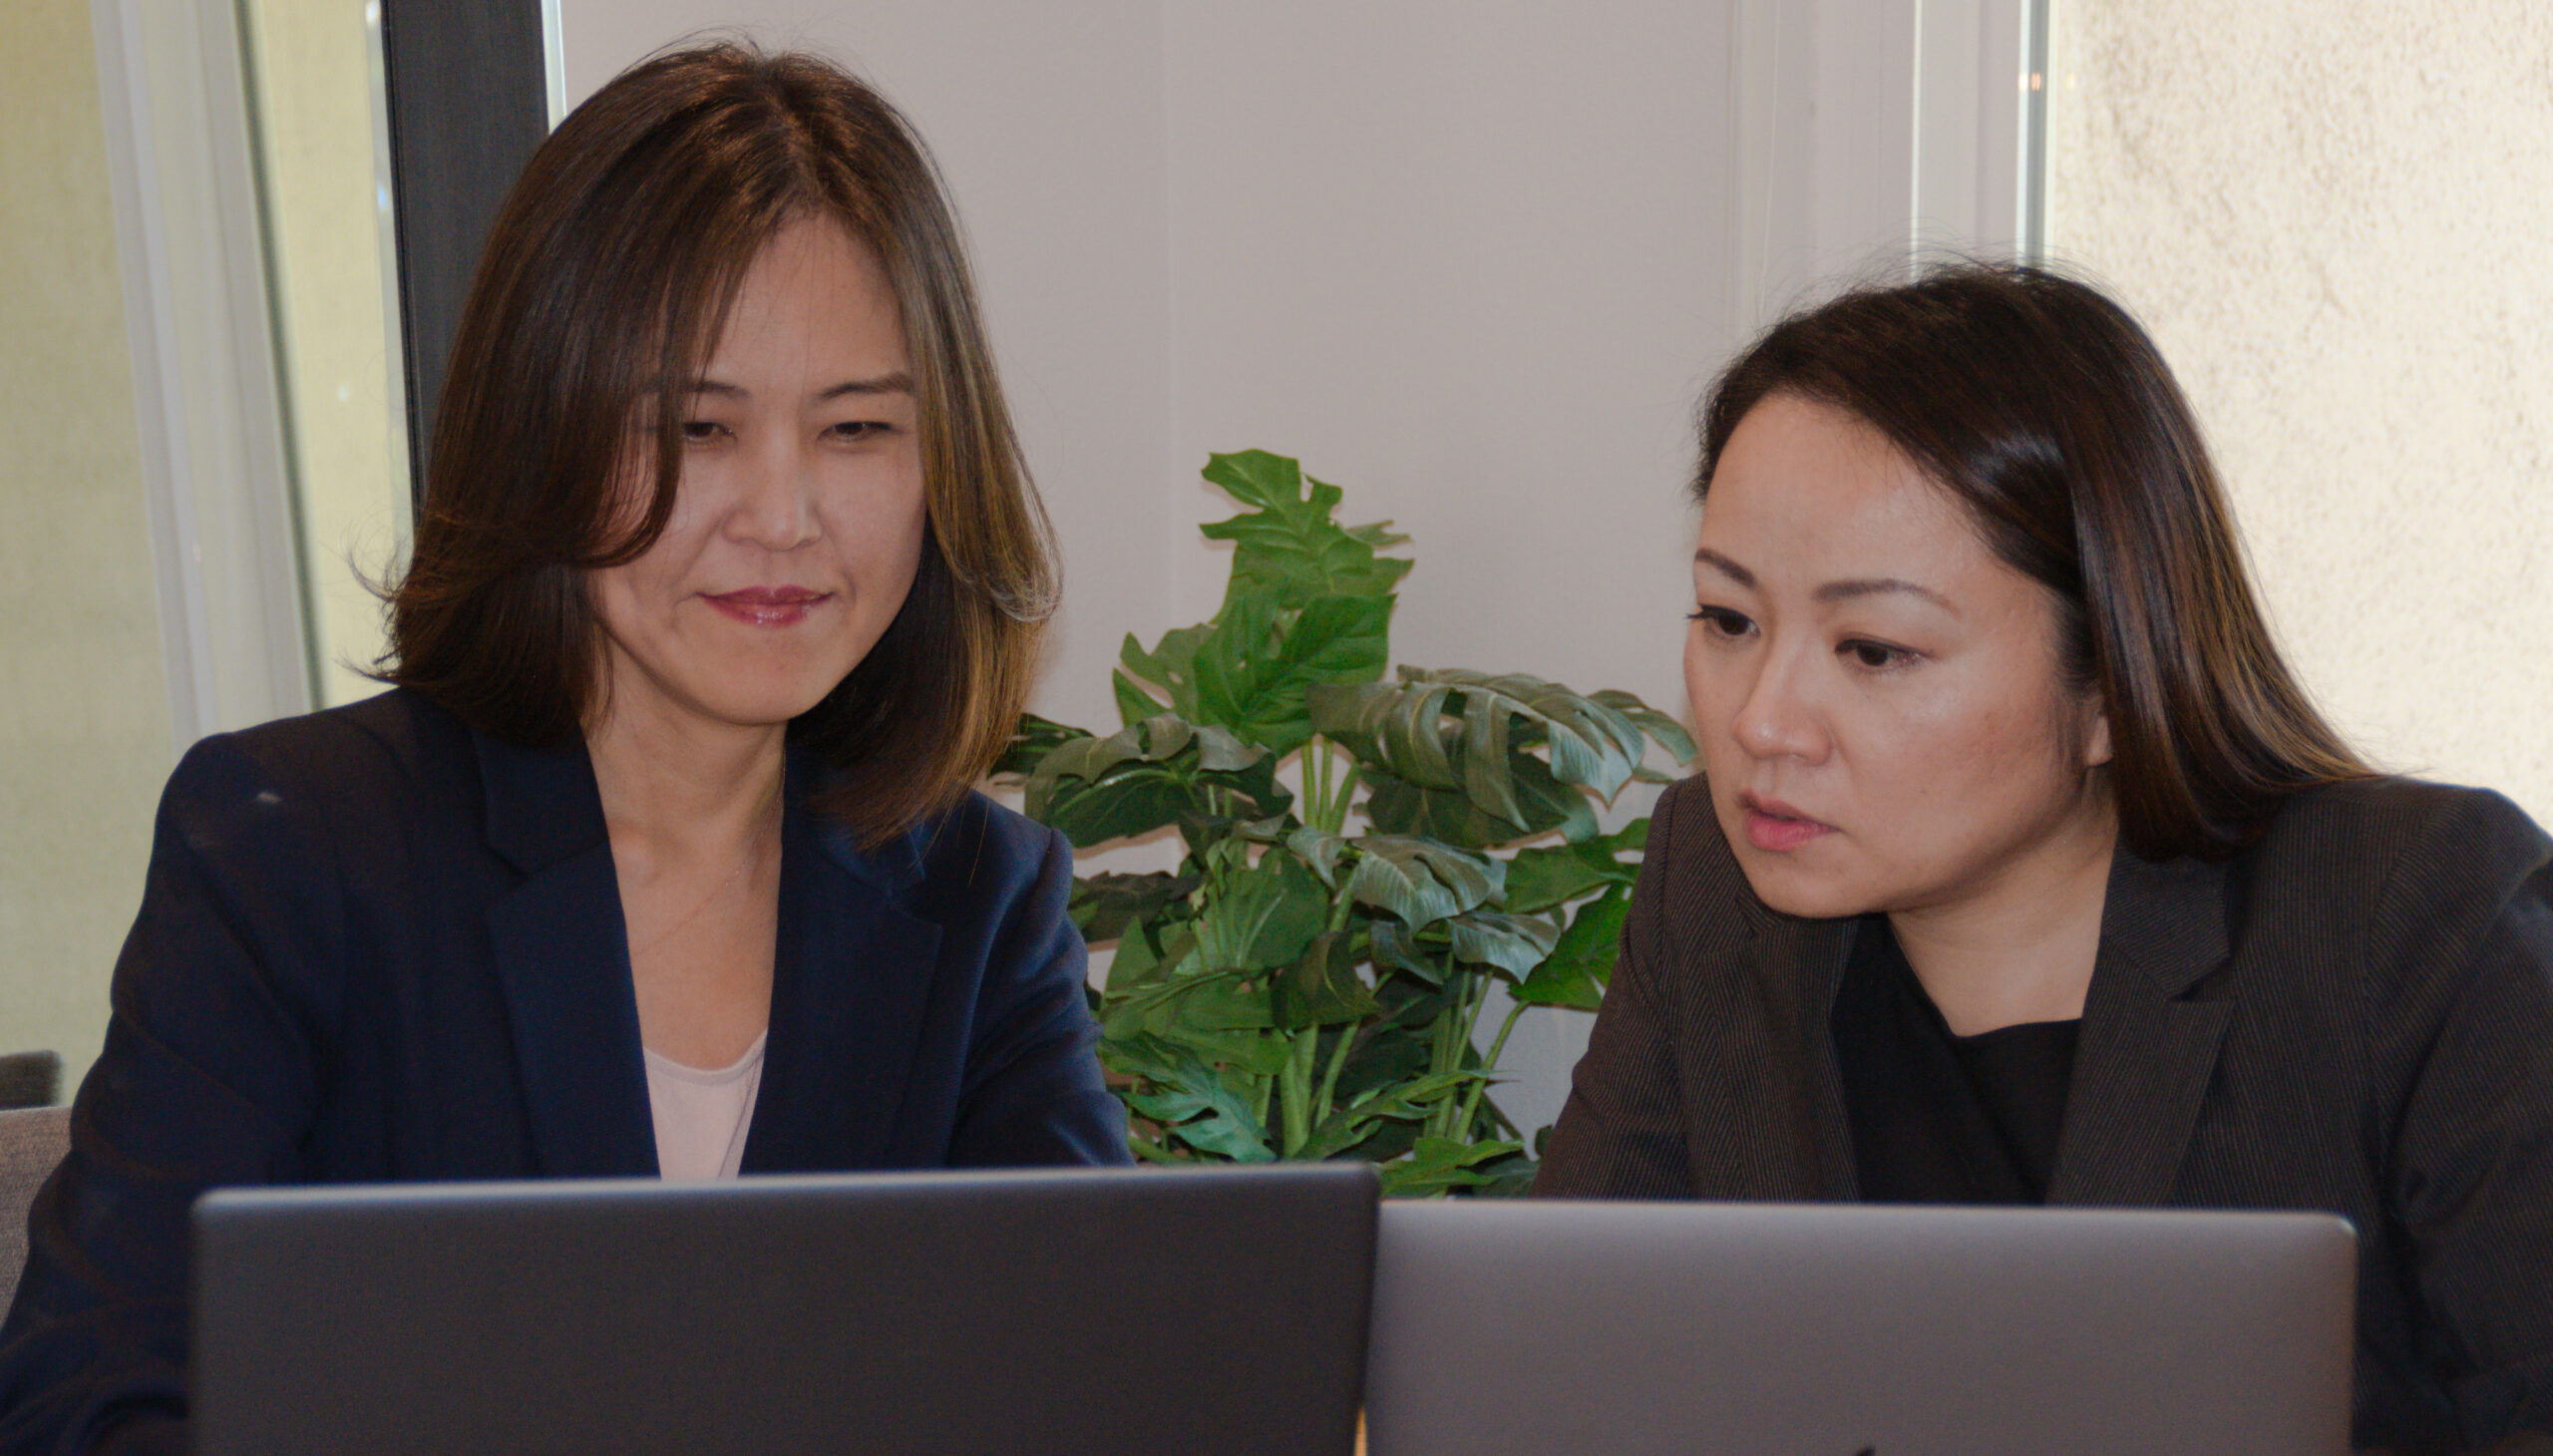 Two Asian females working on laptops